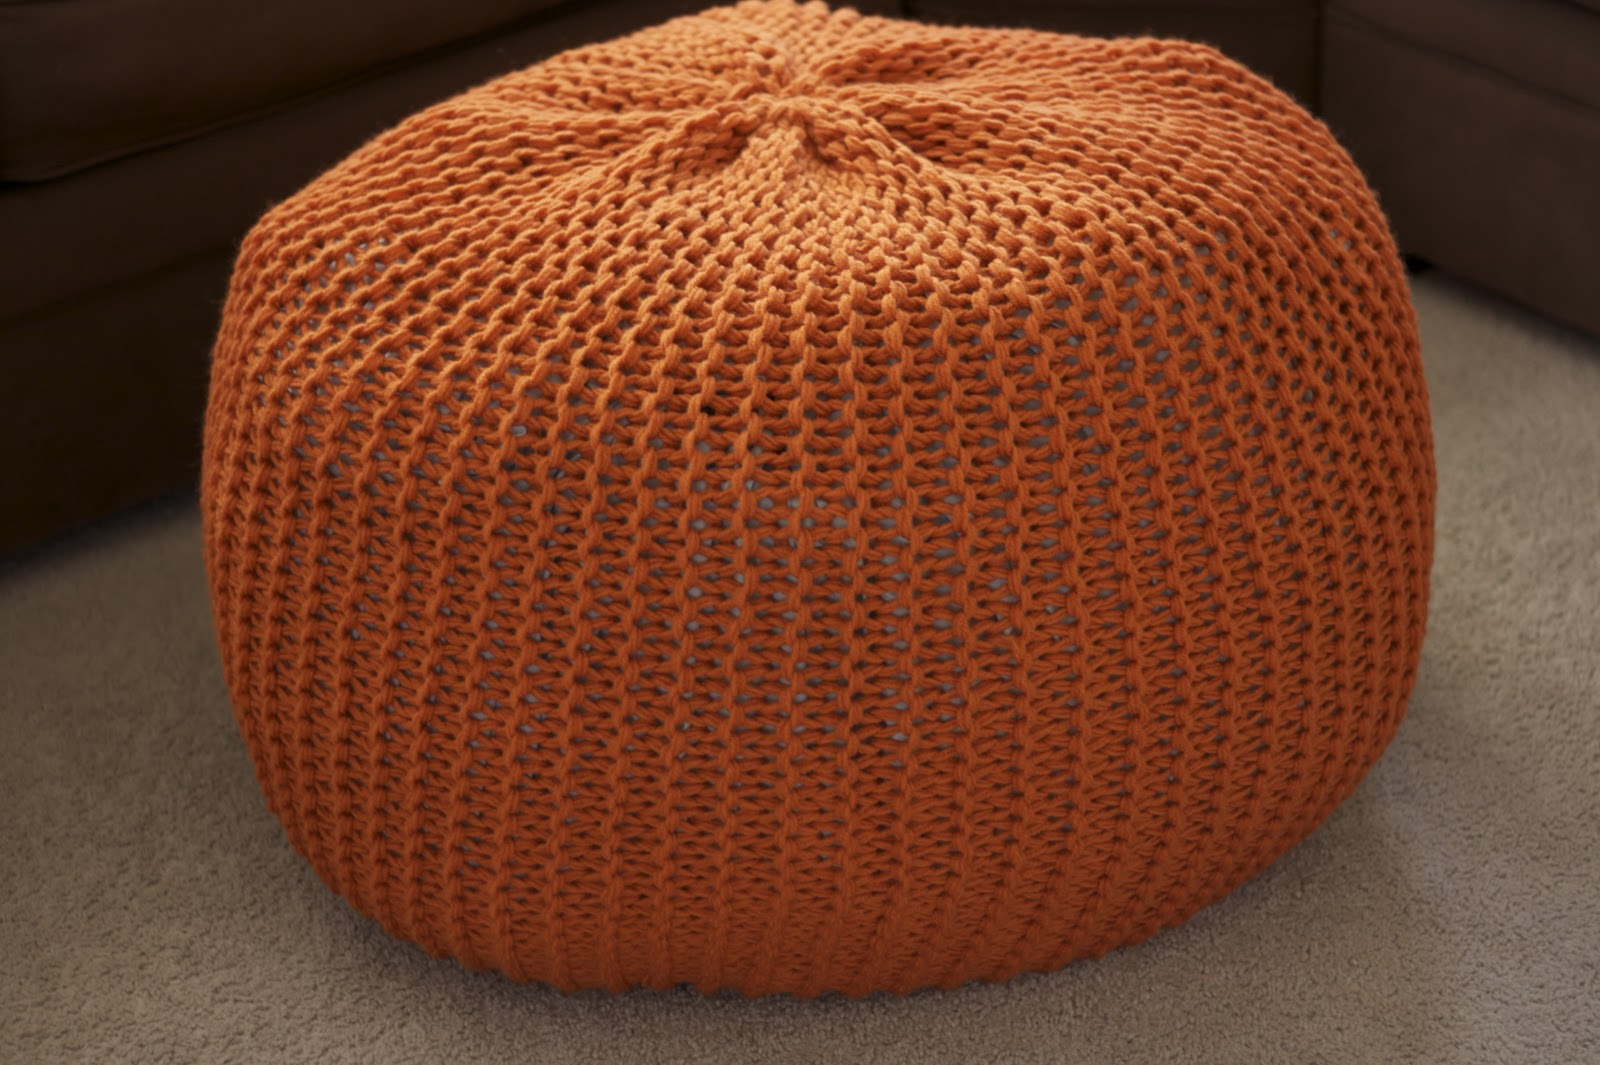 Orange Accessories Living Room Pouf A New Coffee Table The Pinterest Project